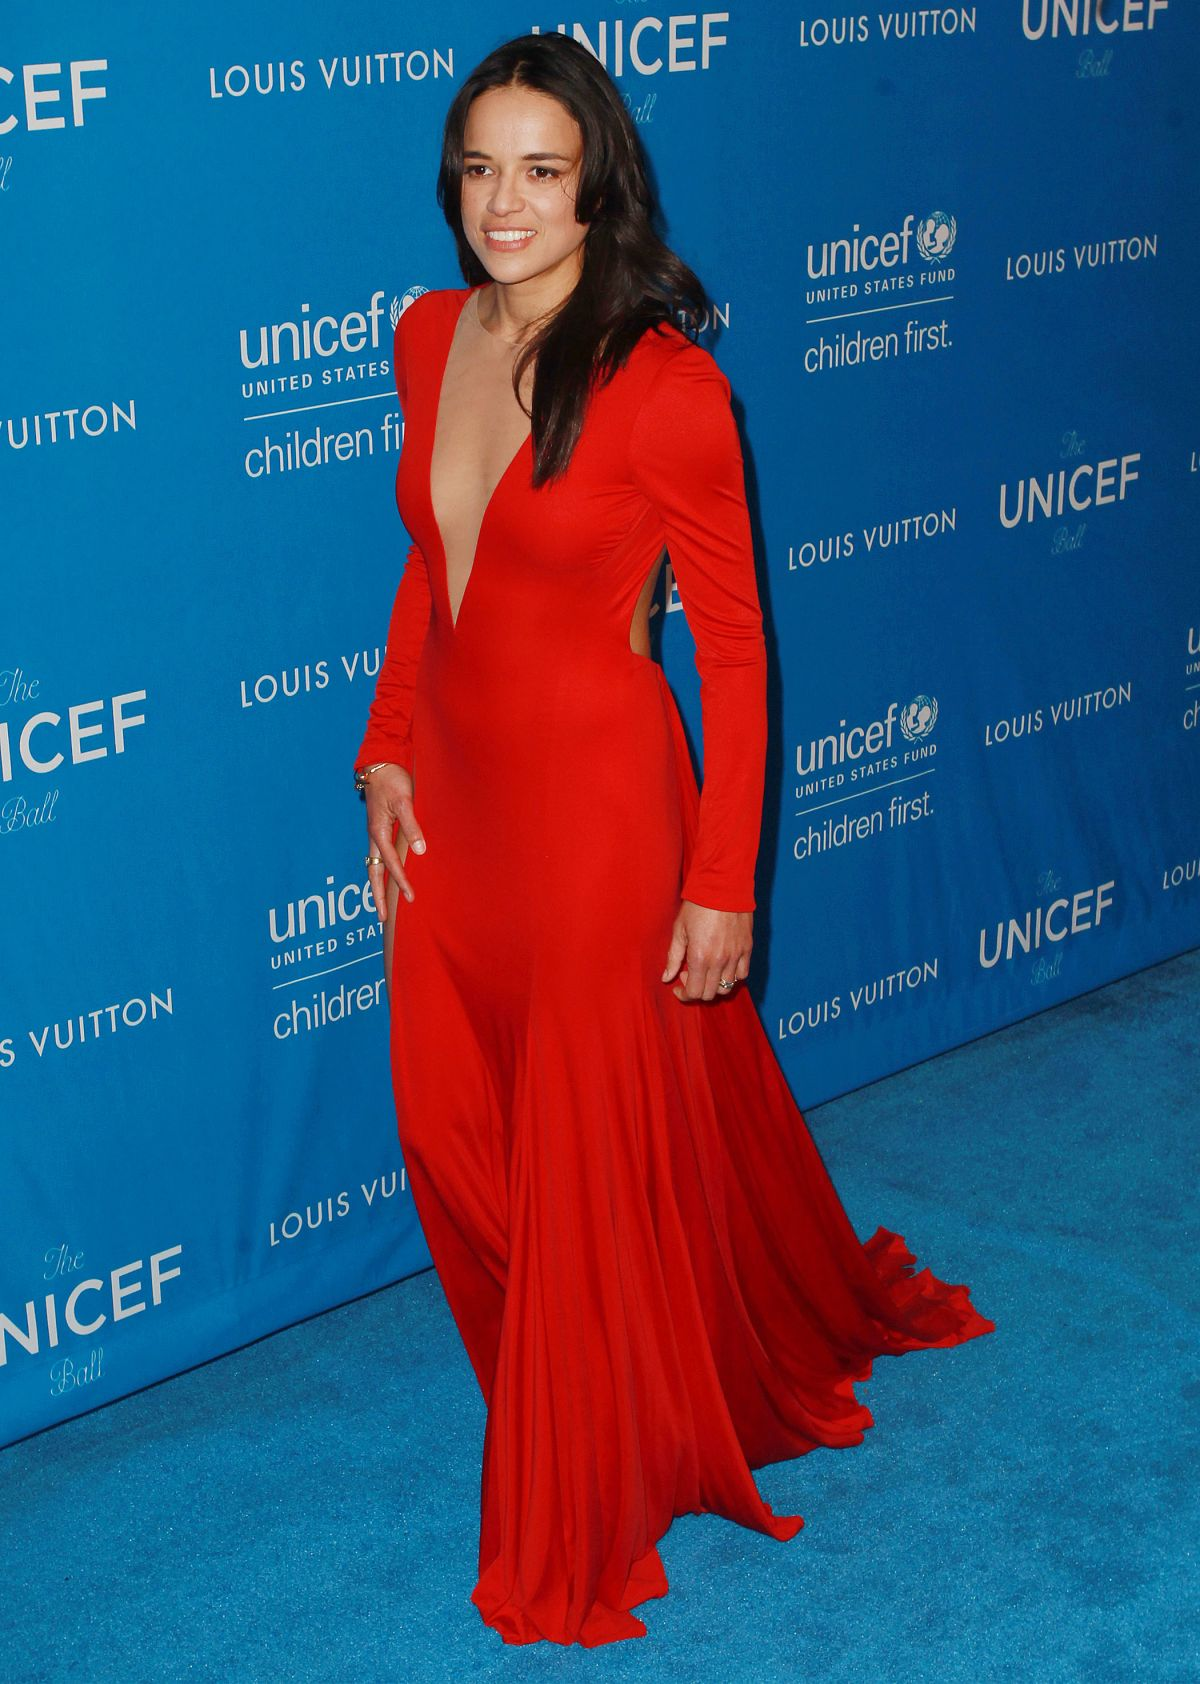 michelle-rodriguez-at-6th-biennial-unicef-ball-in-beverly-hills-01-12-2016_8